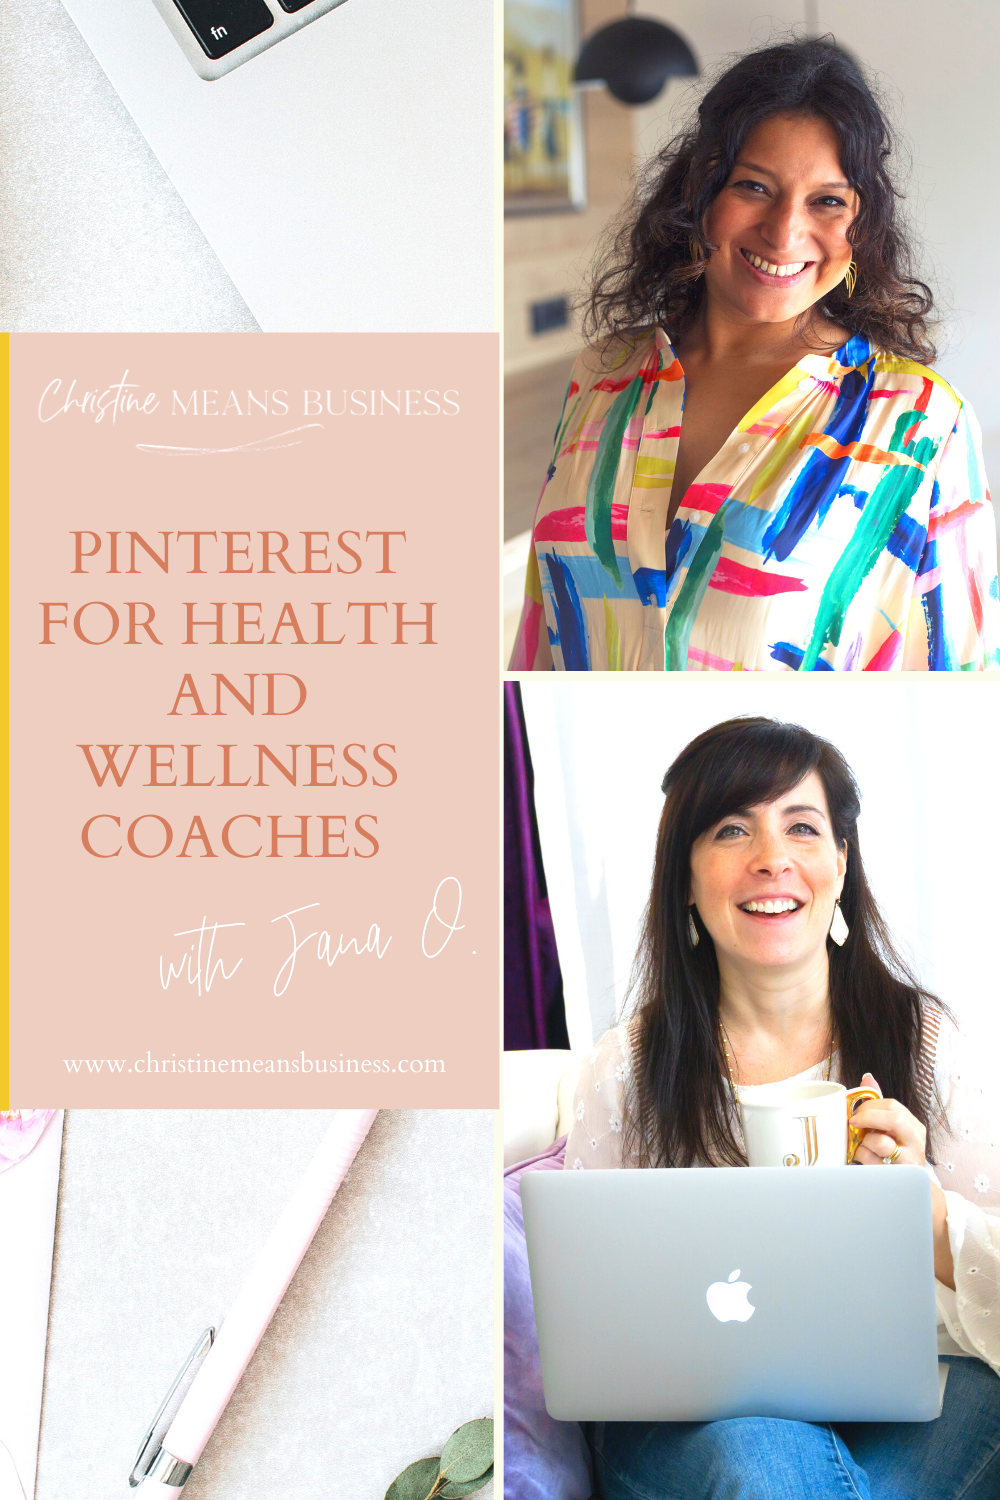 Pinterest for Health and Wellness coaches